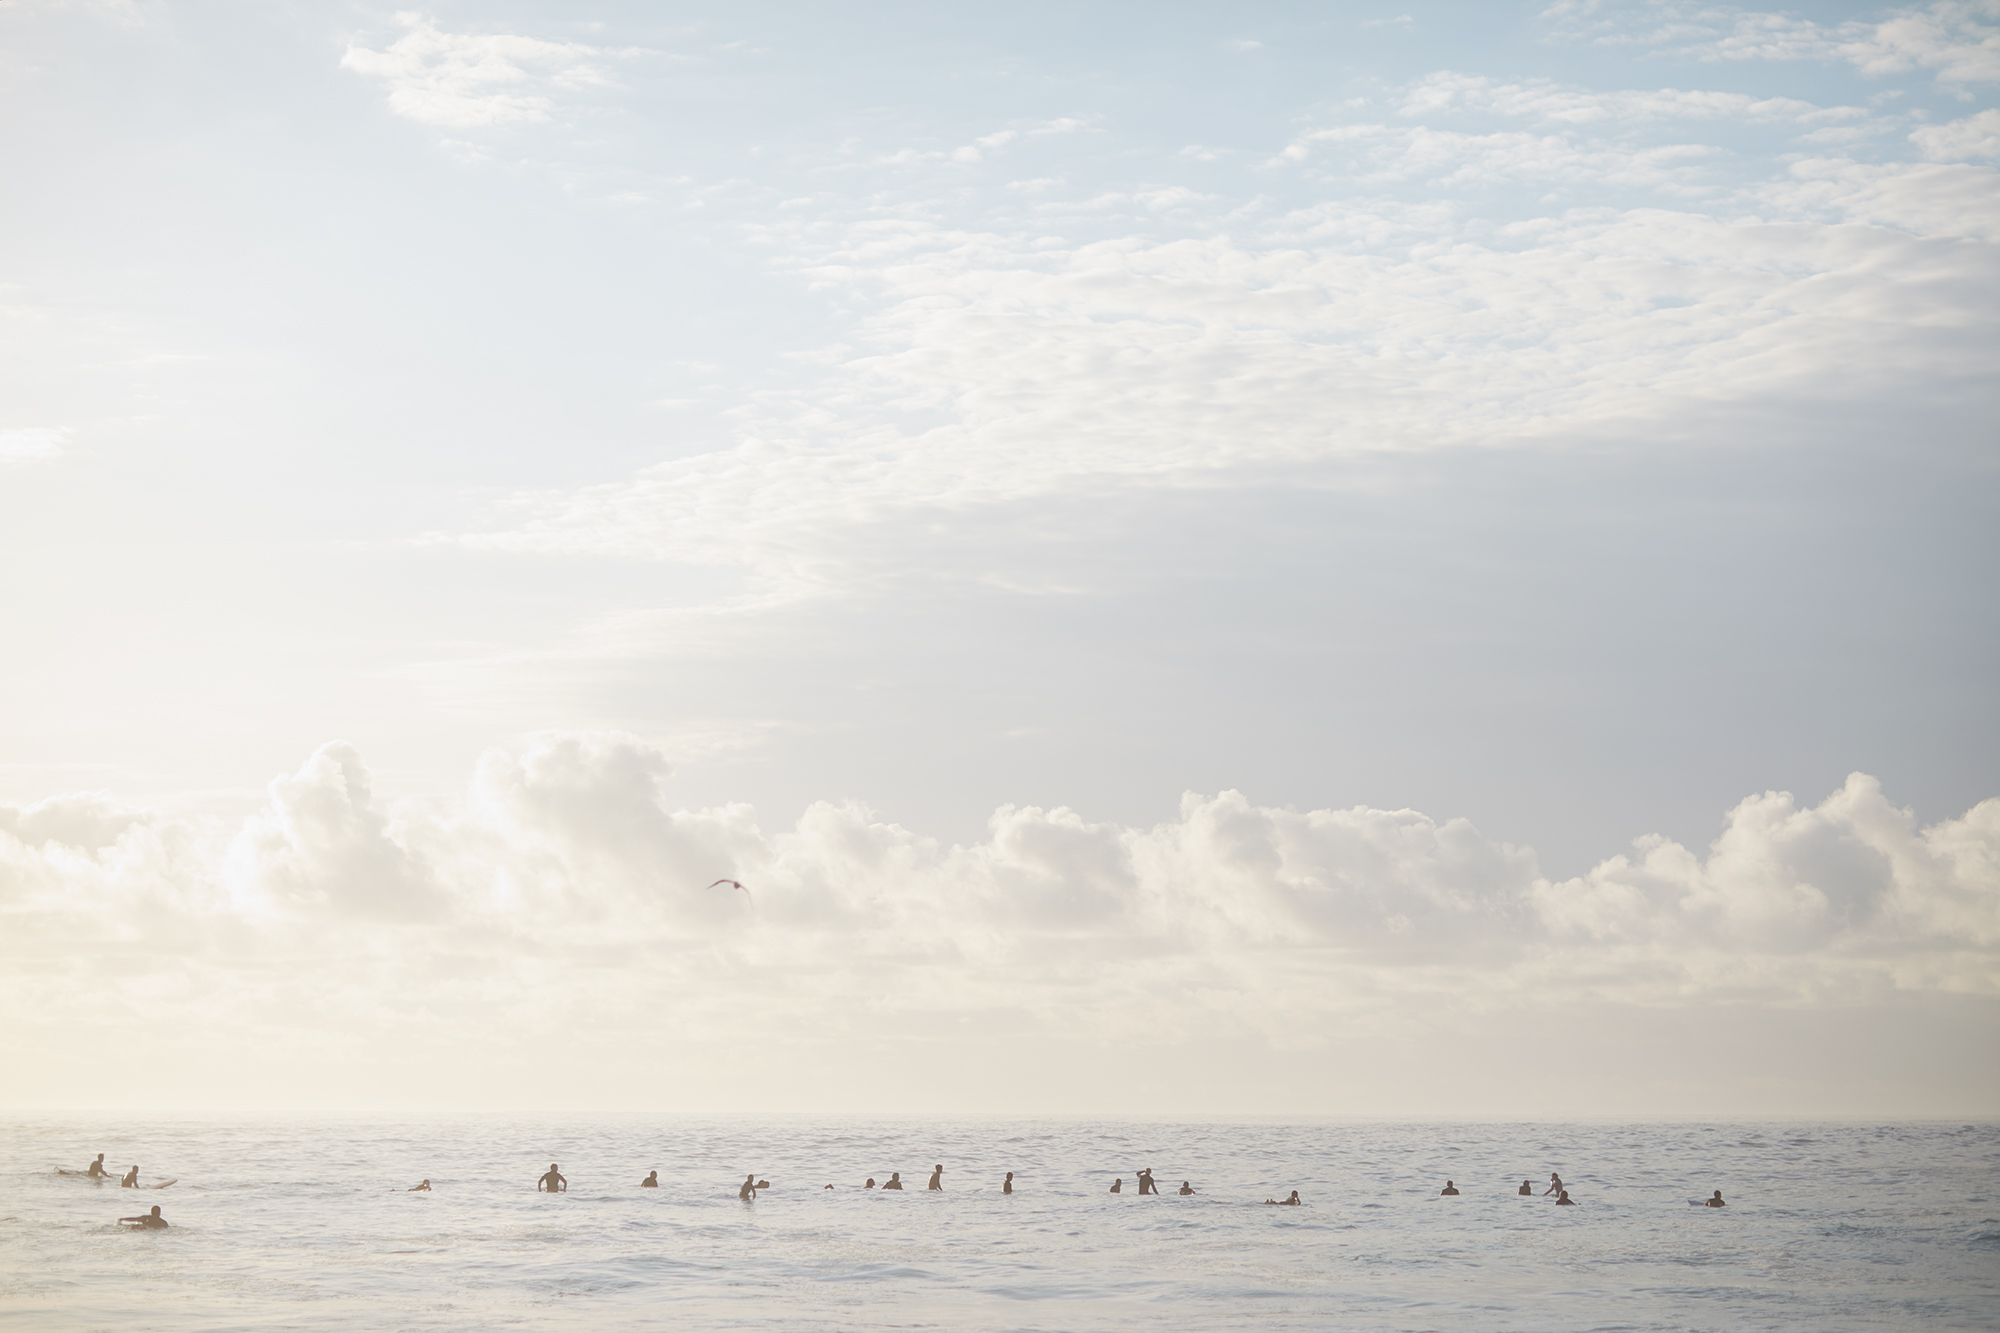 White Out Aquabumps s1a9246